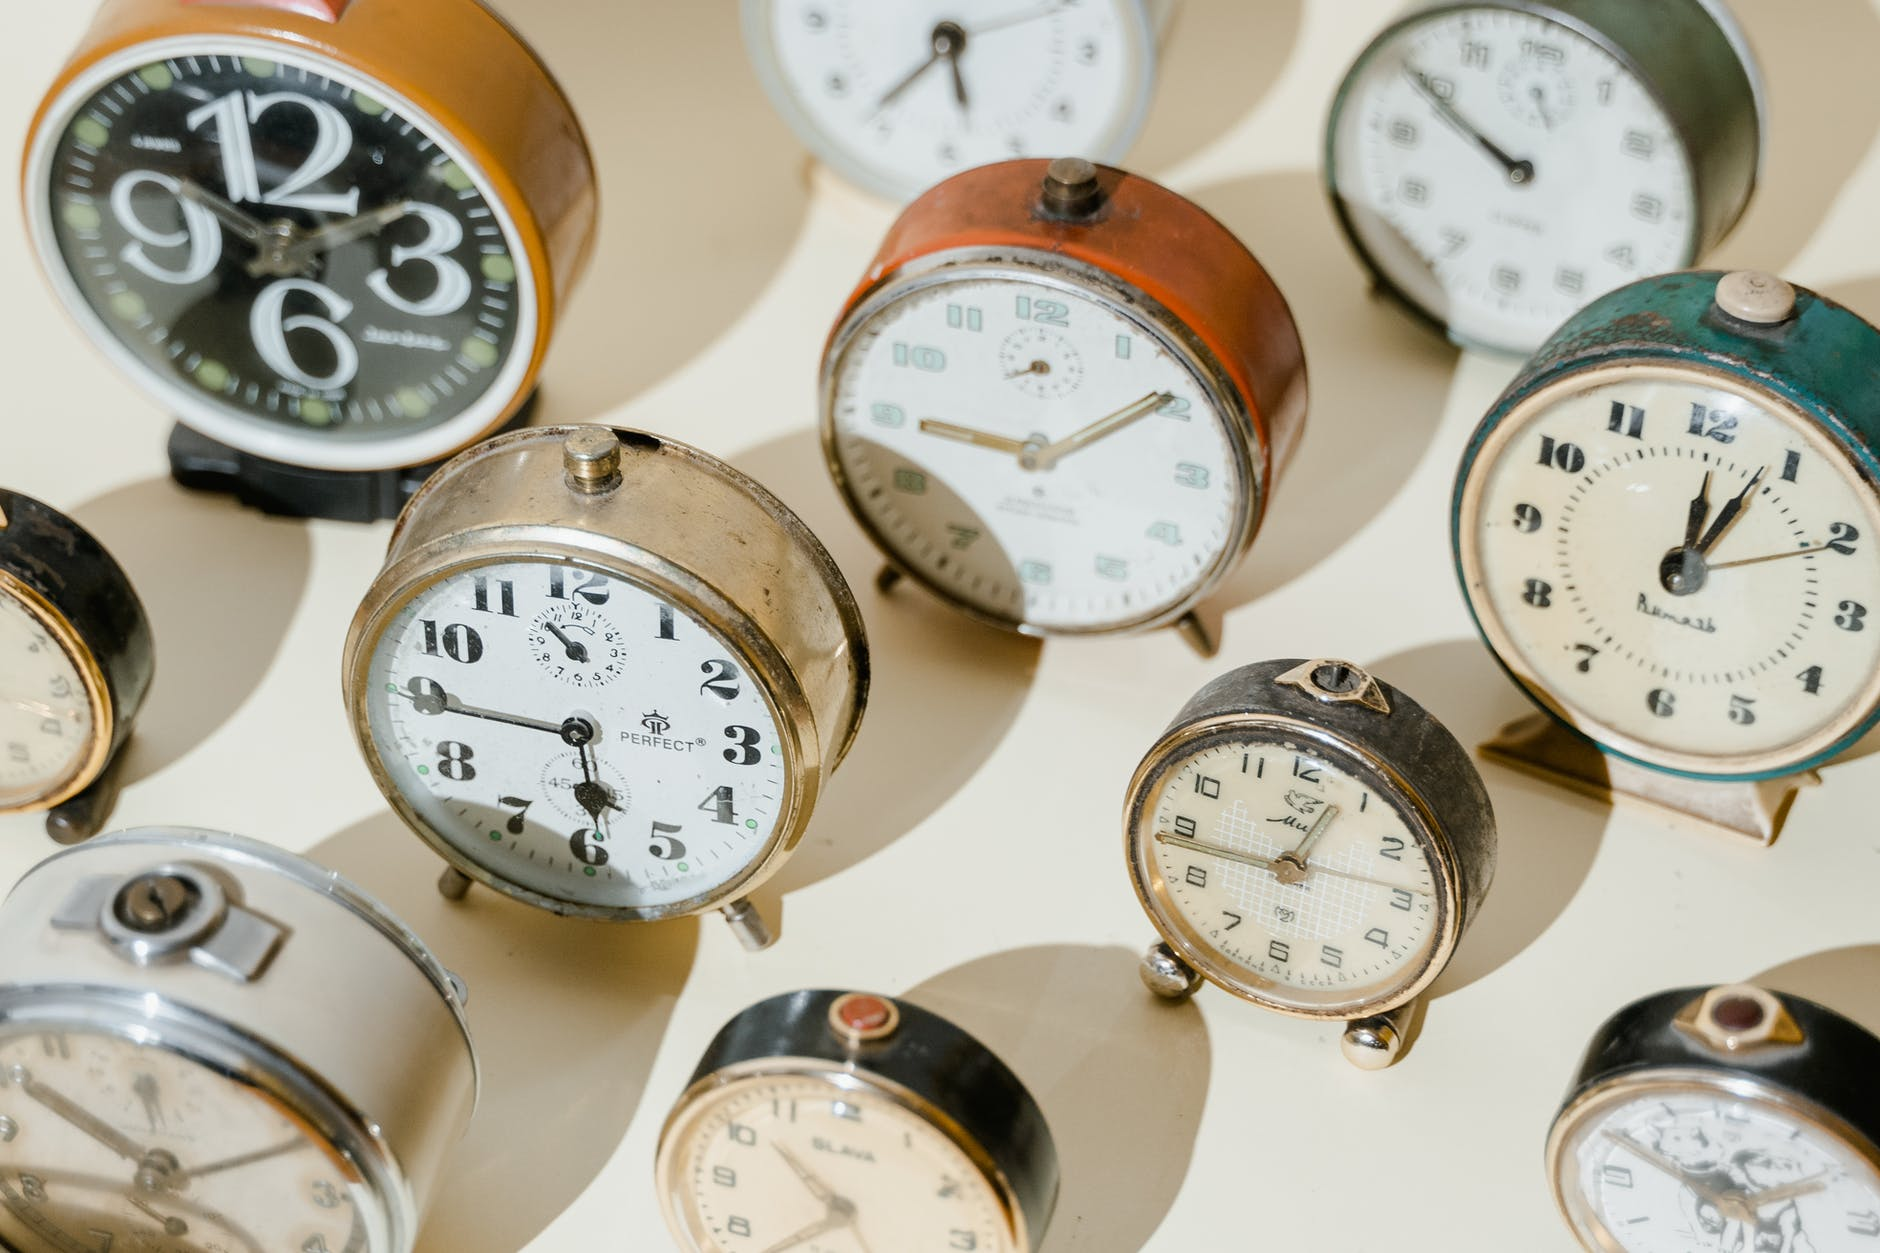 A photo of several vintage clocks lined up in rows.